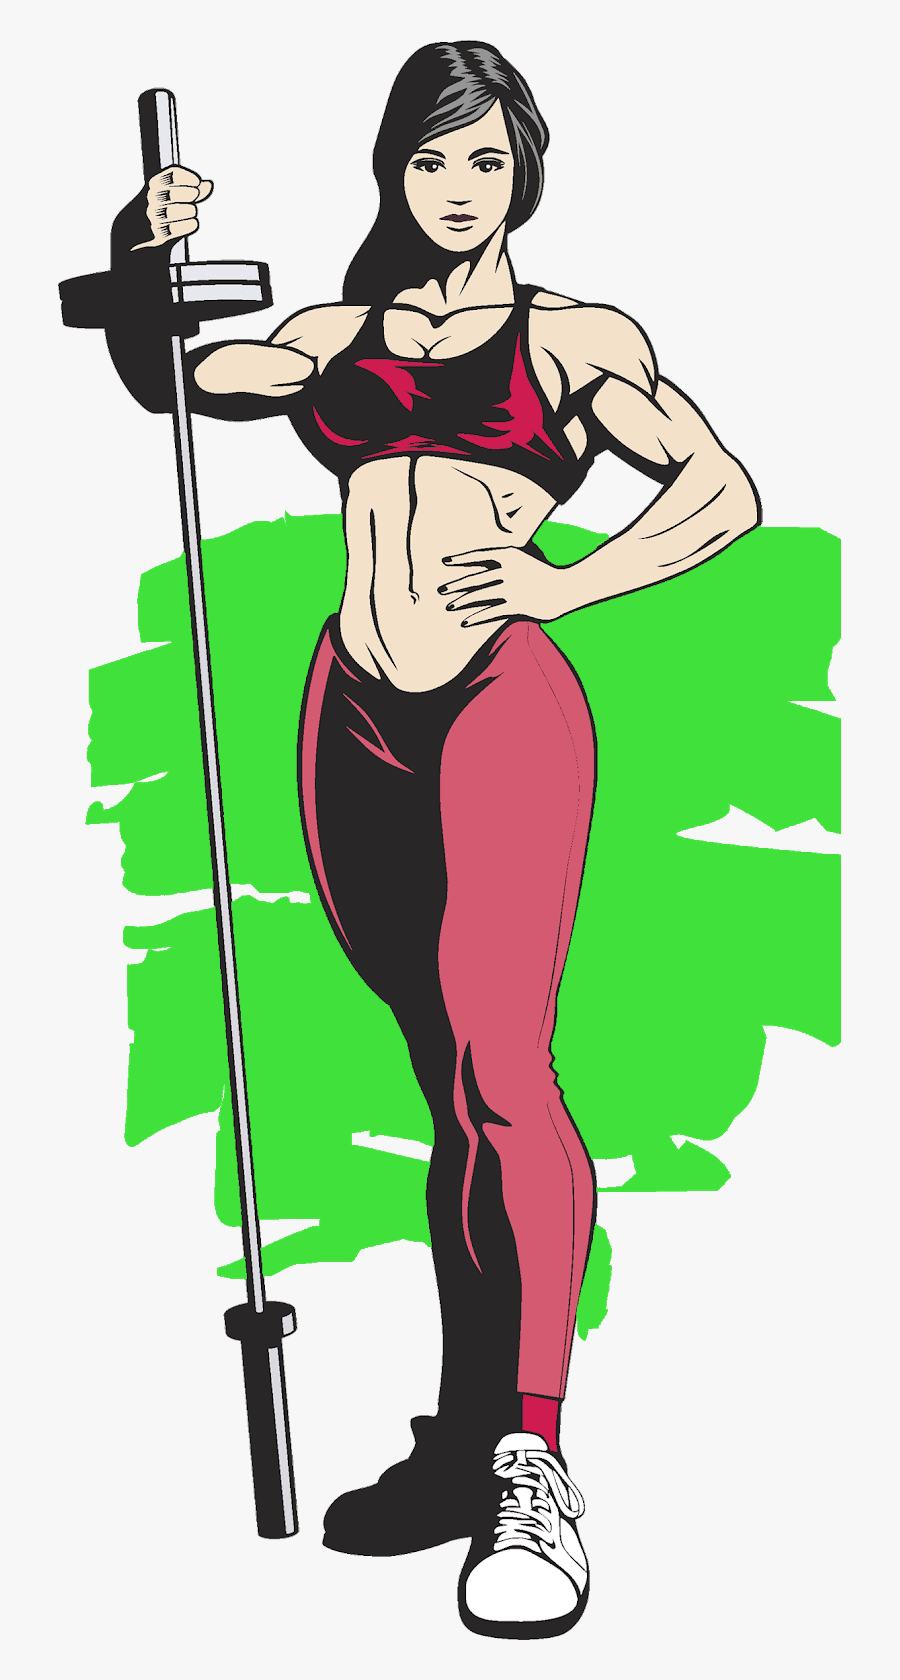 Fitness Clipart Crossfit Woman Bodybuilding Woman Vector Free Transparent Clipart Clipartkey Choose from over a million free vectors, clipart graphics, vector art images, design templates, and illustrations created by artists worldwide! fitness clipart crossfit woman